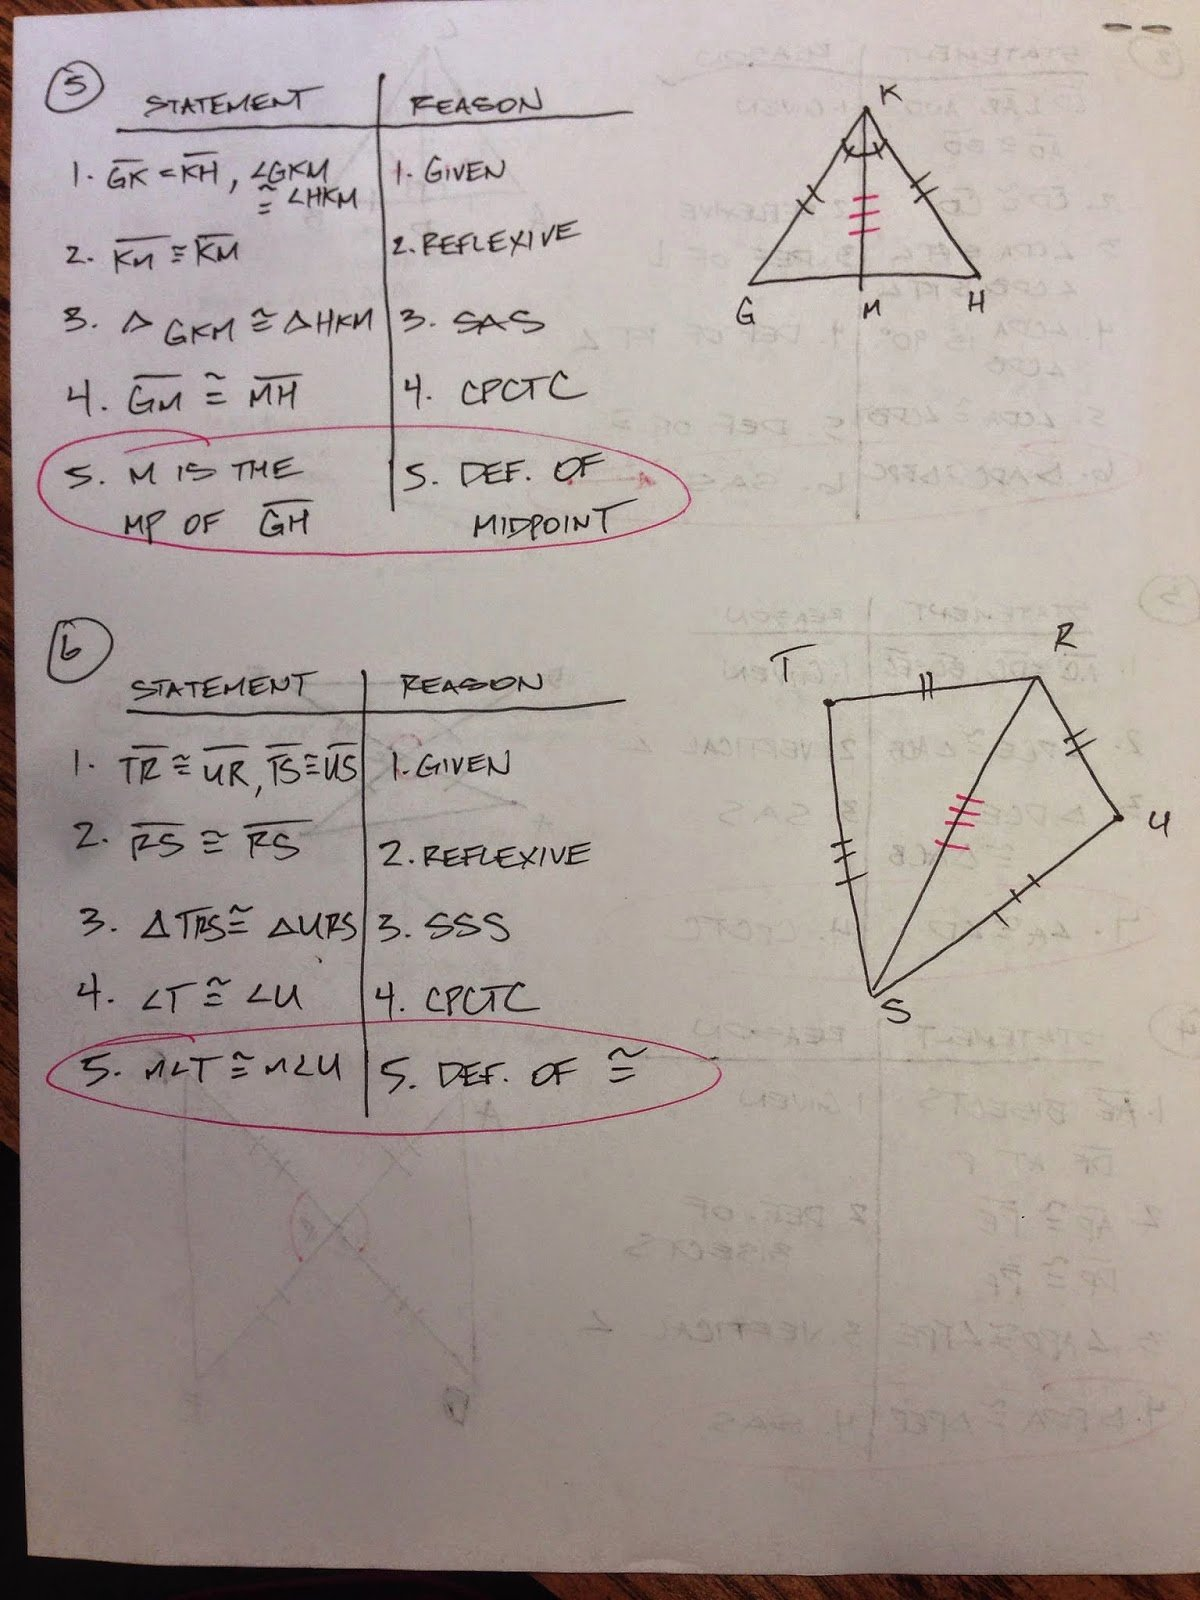 Triangle Congruence Worksheet Answers Elegant Using Congruent Triangles Cpctc Worksheet 4 4